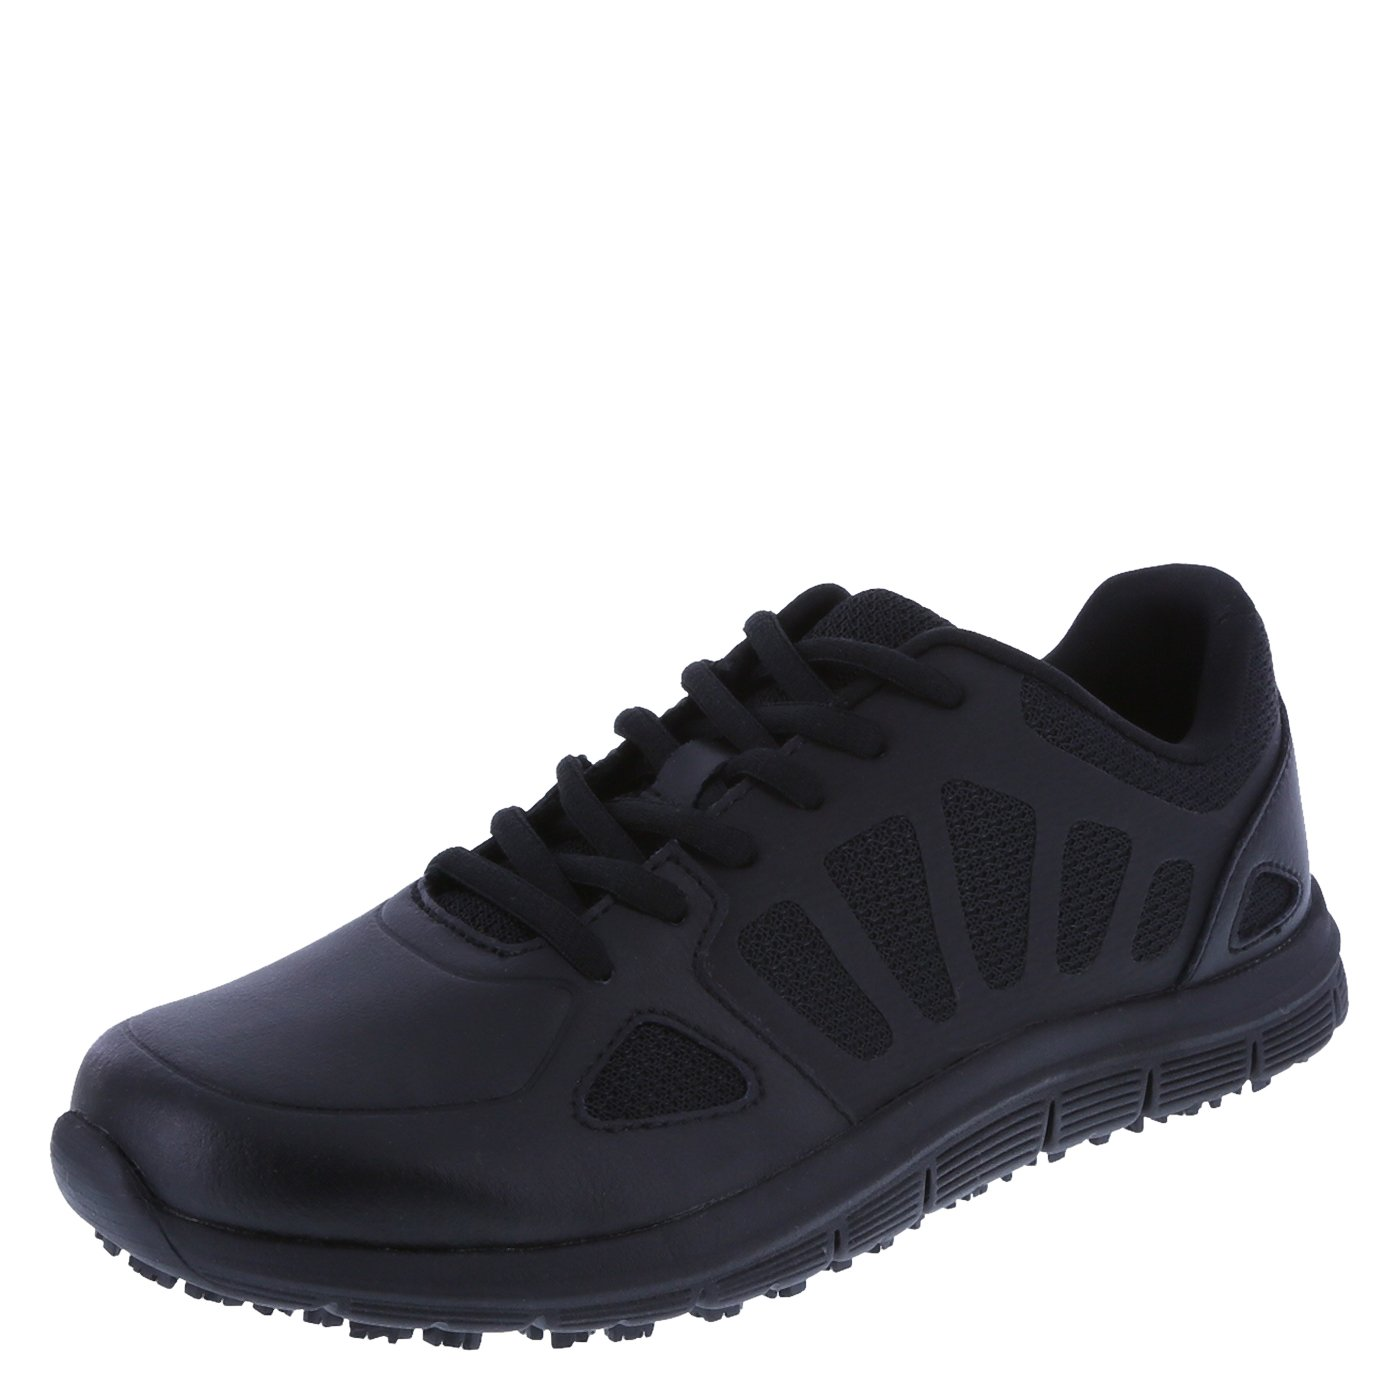 safeTstep Women's Black Slip Resistant Avail 2.0 Runner 10 Regular